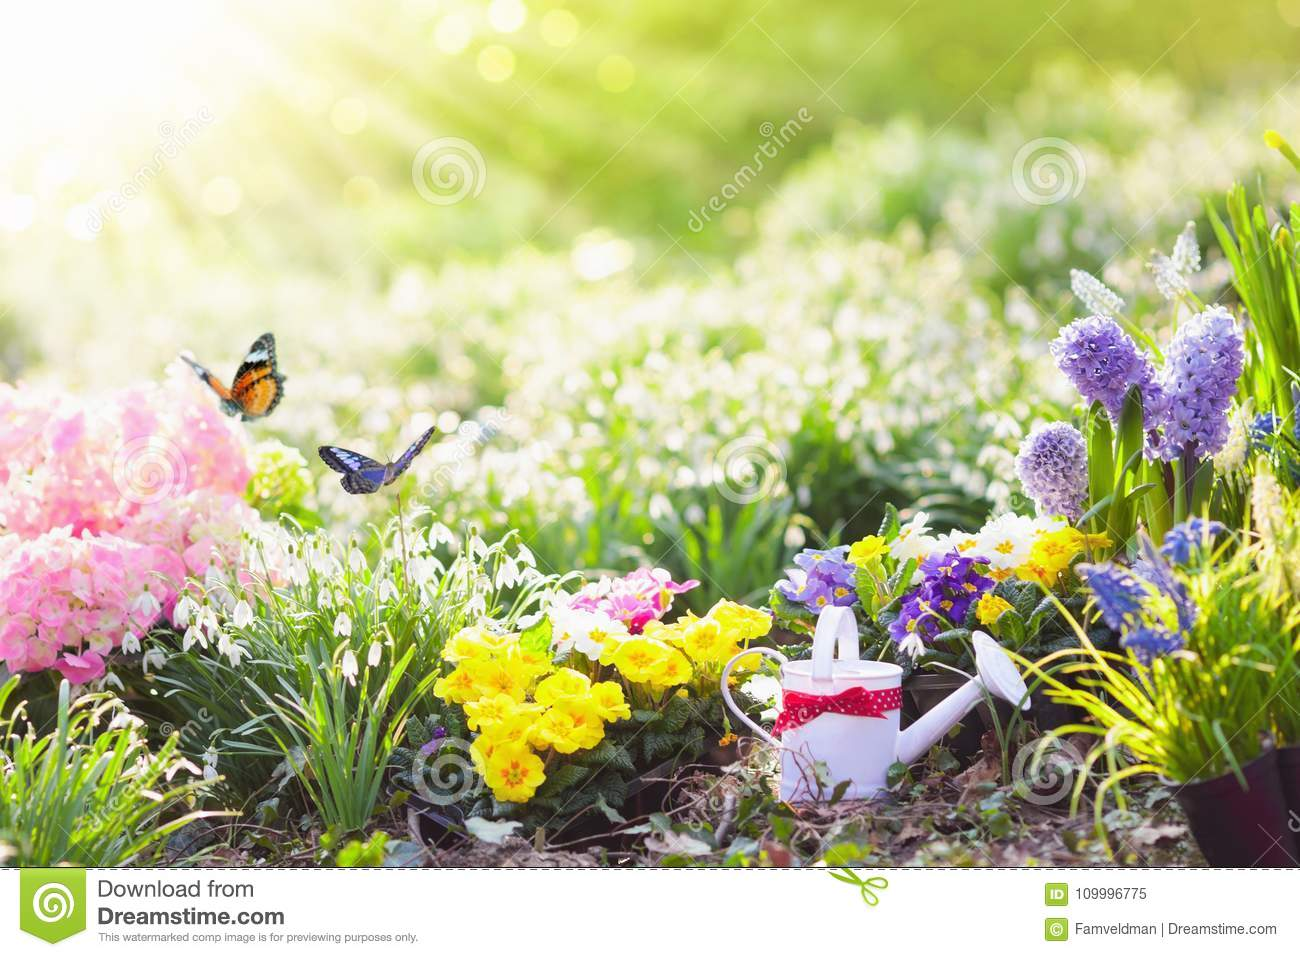 Spring garden with flowers gardening tools stock image image of beautiful blooming garden with flower bed on sunny spring day watering can shovel spade gardening tools and equipment planting potted flowers izmirmasajfo